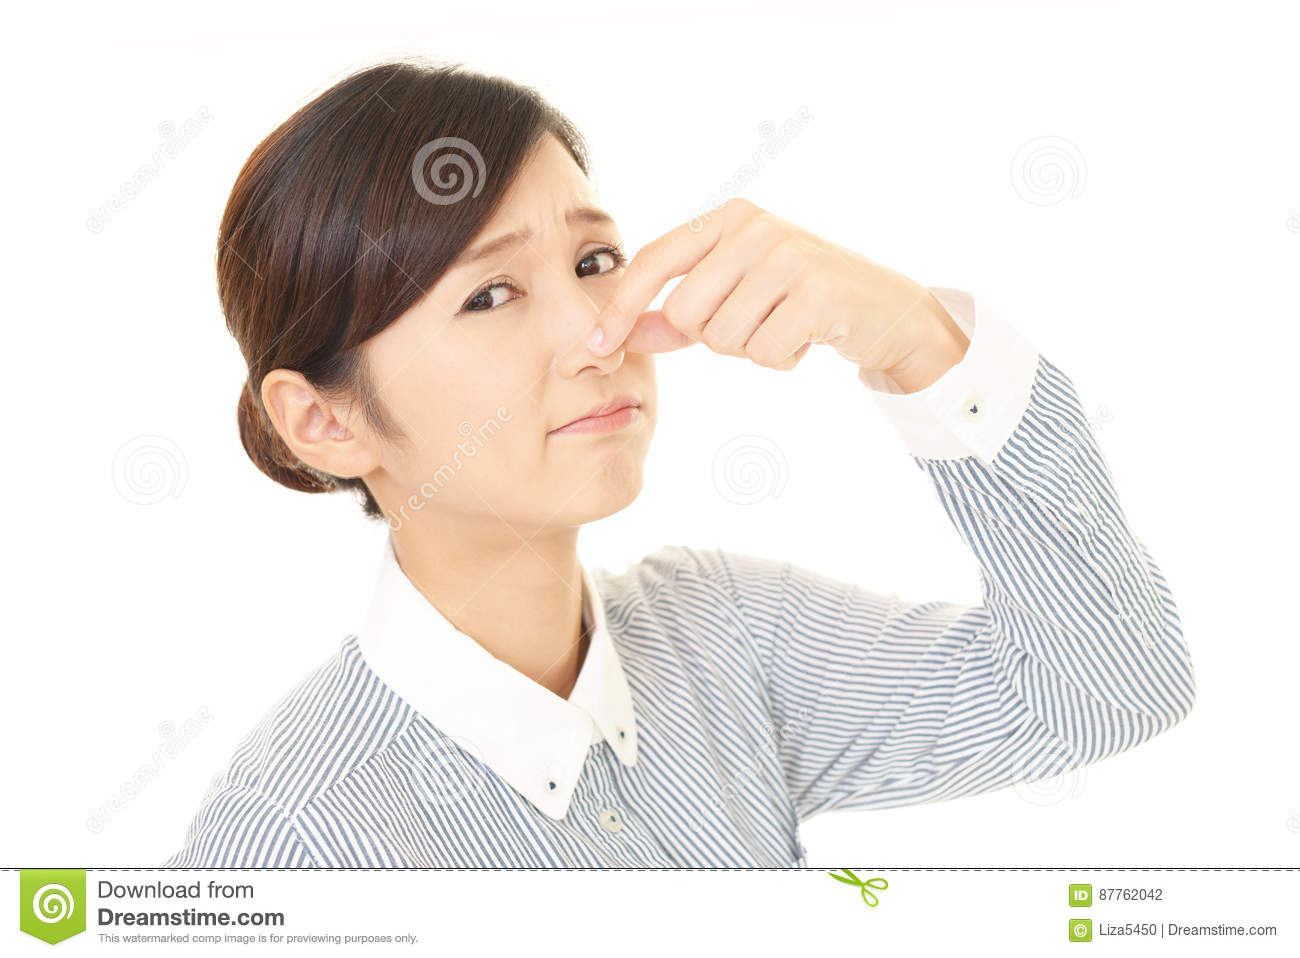 The woman who holds a nose in check